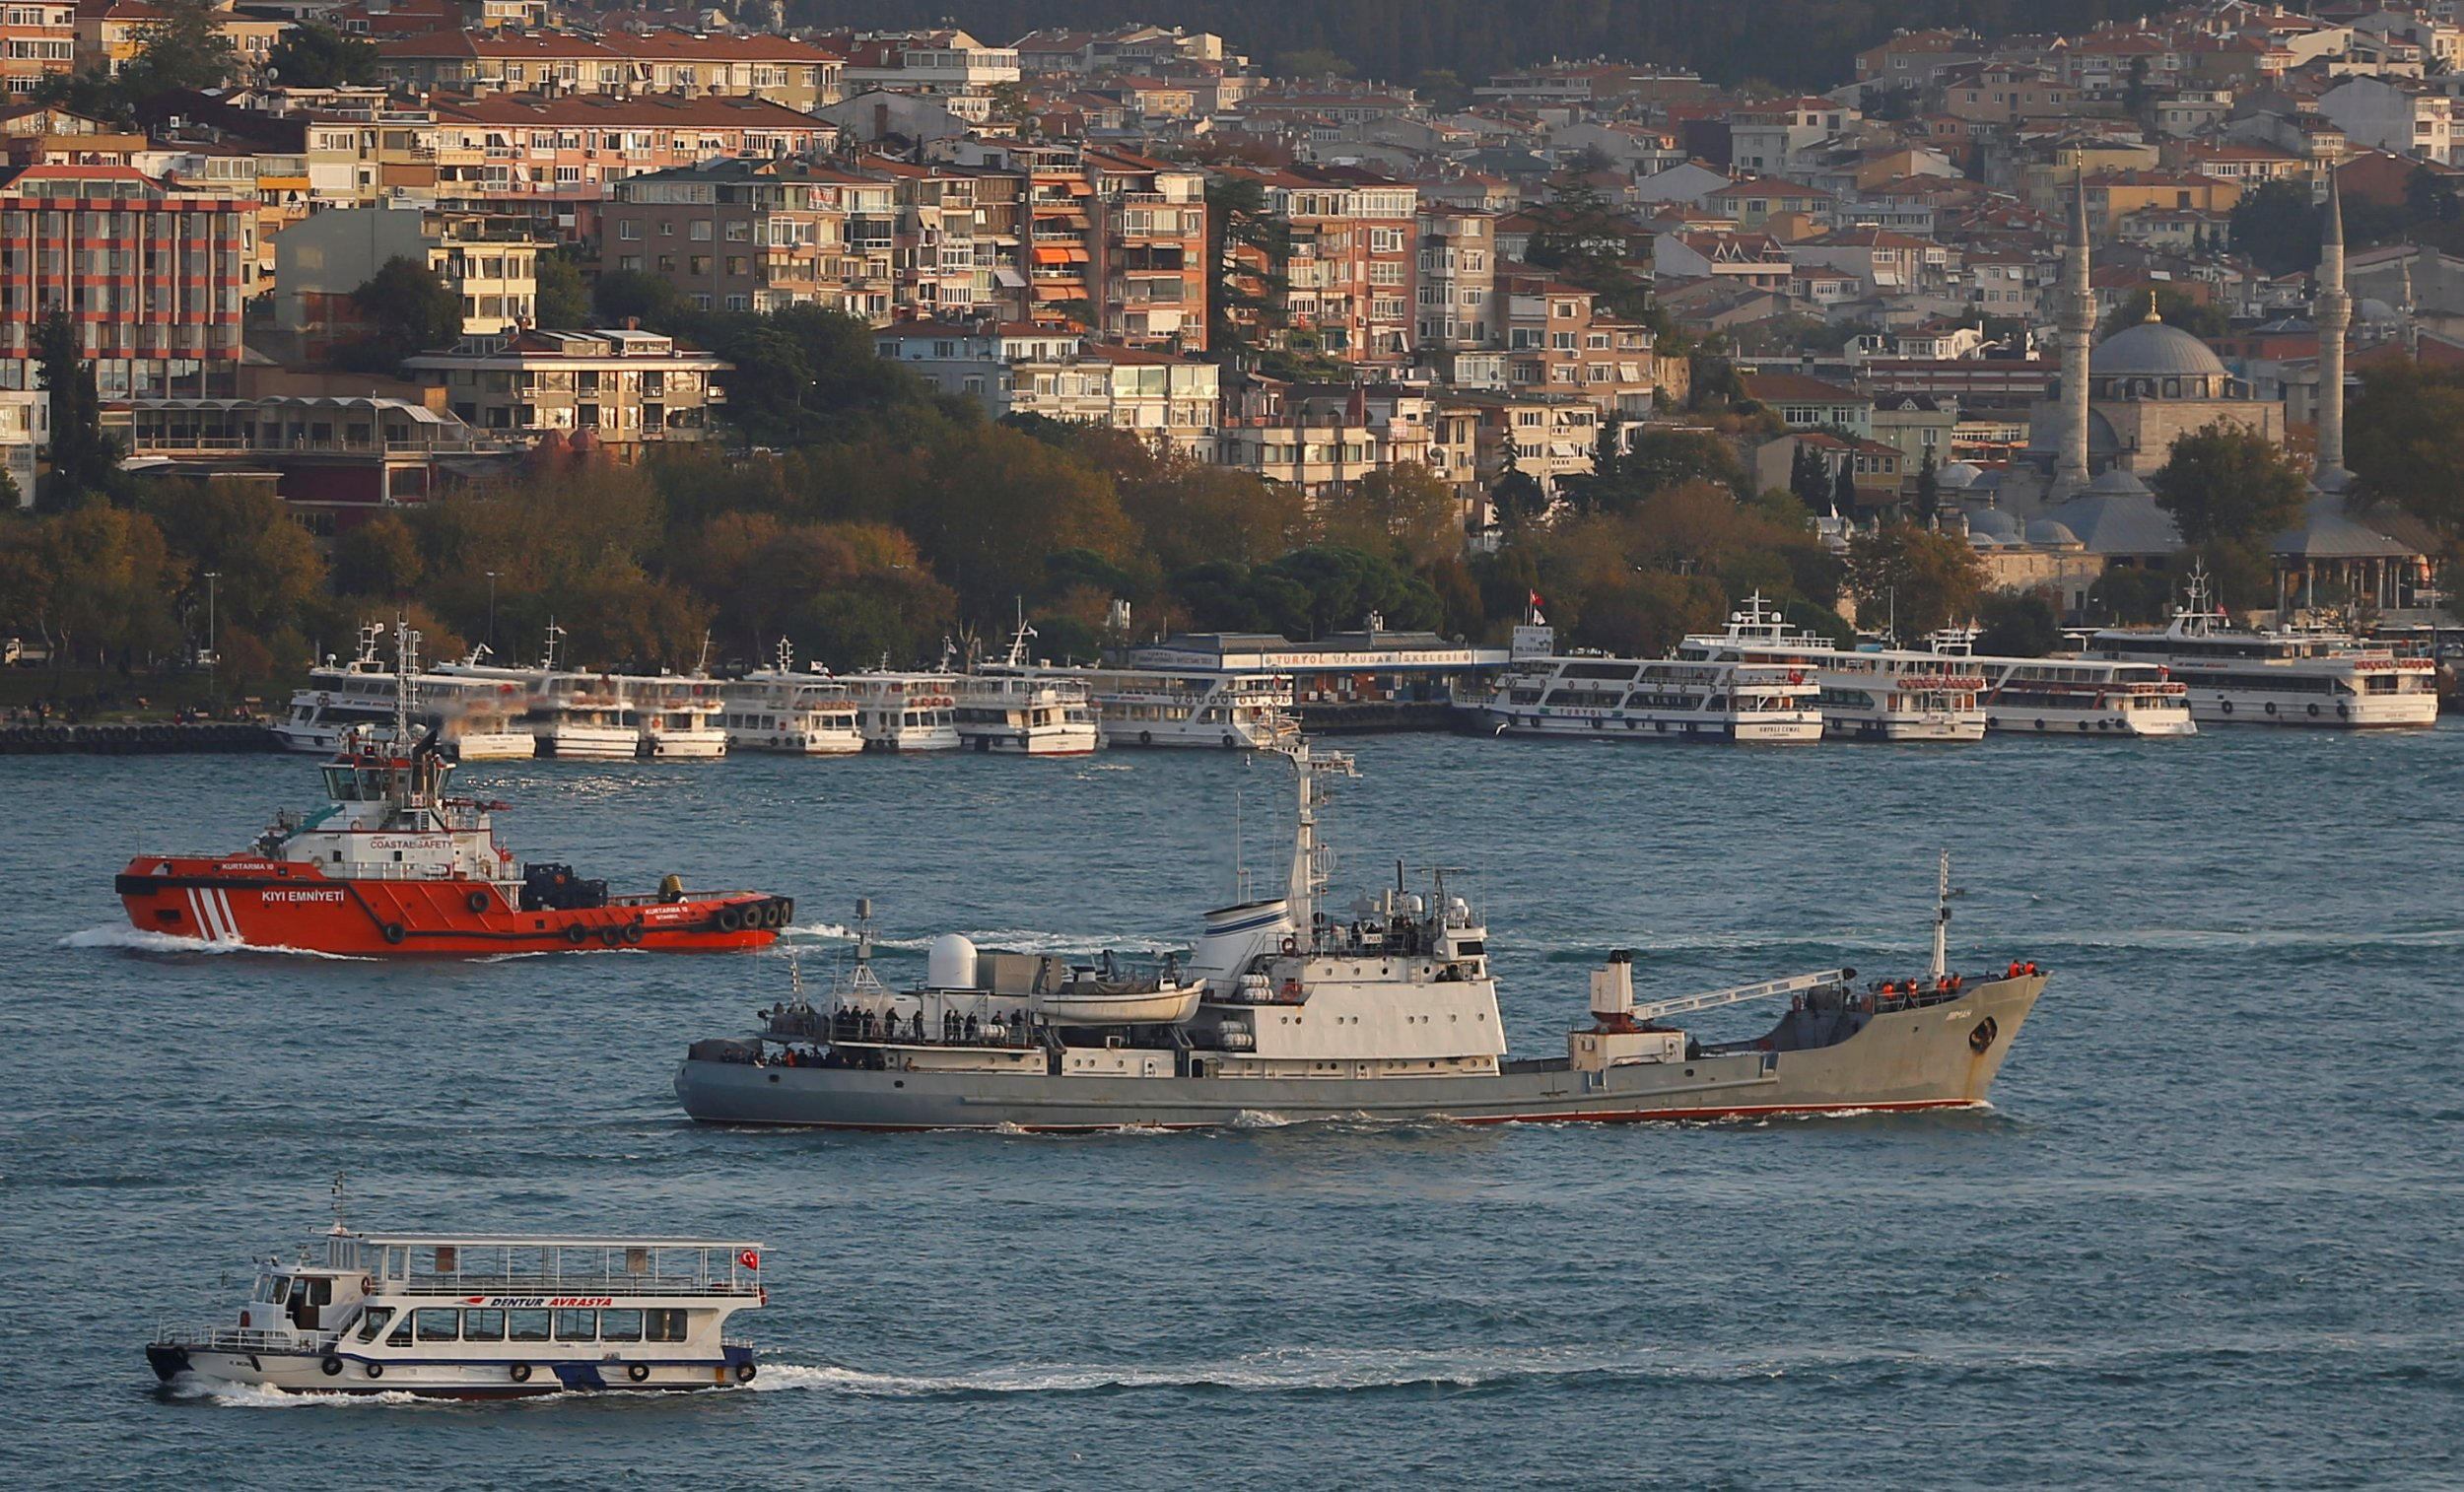 Russian navy ship in Turkey